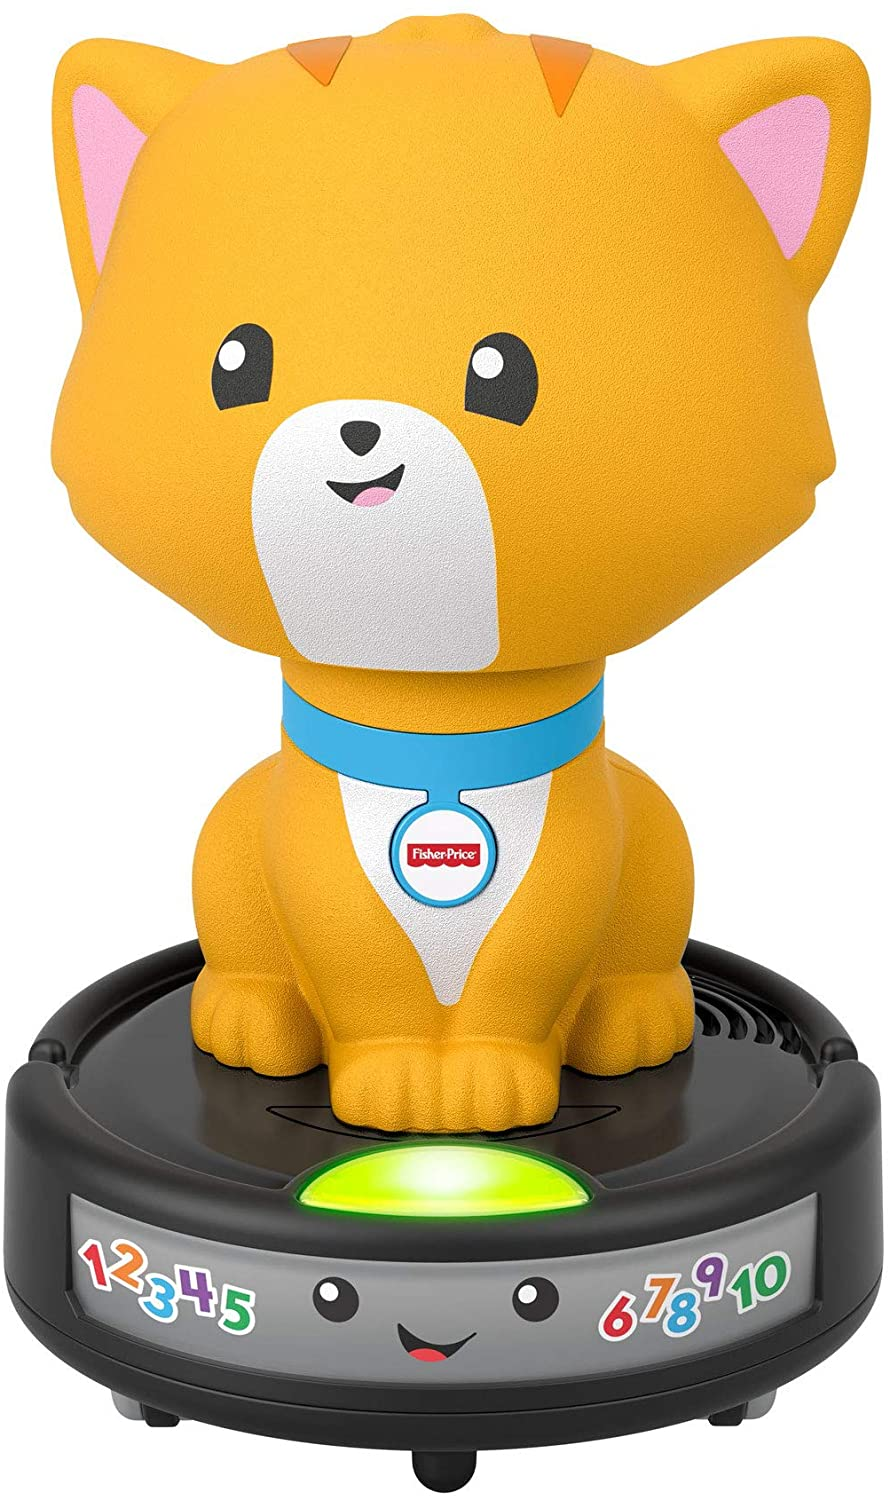 Fisher Price GJW35 Laugh & Learn Crawl-after Cat on a Vac